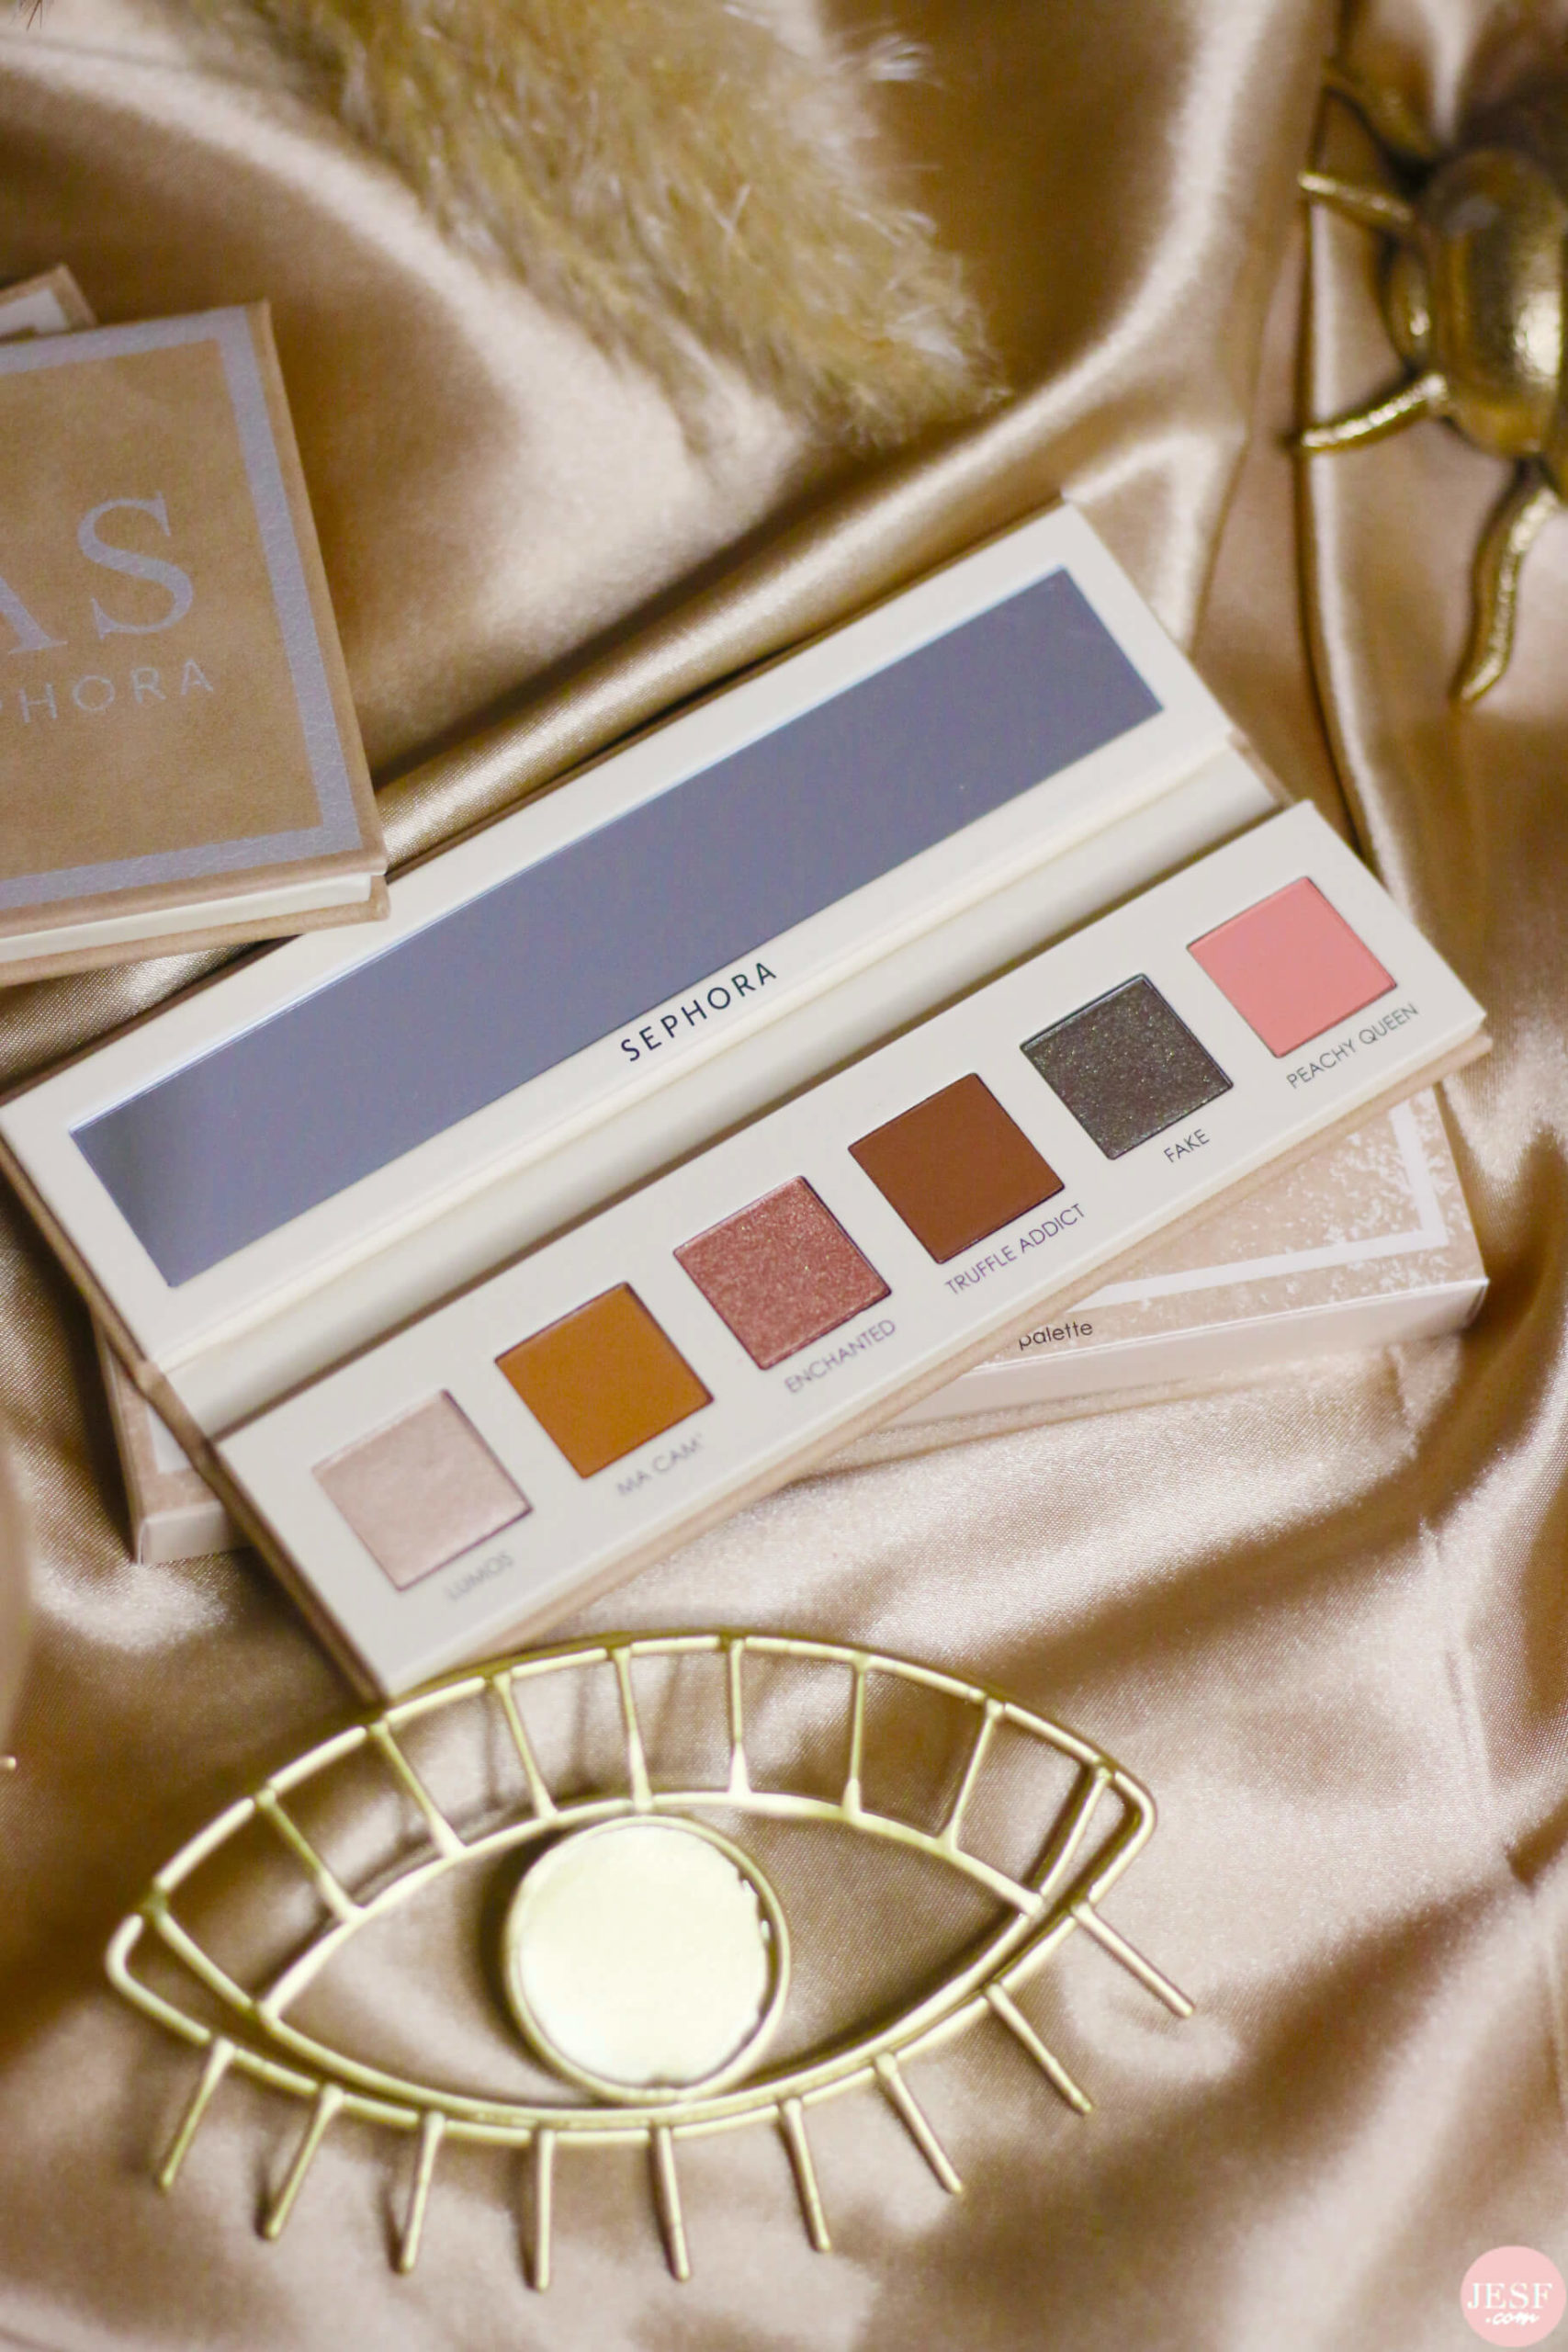 avis-palette-makeup-collection-Sananas-Sephora-Collection